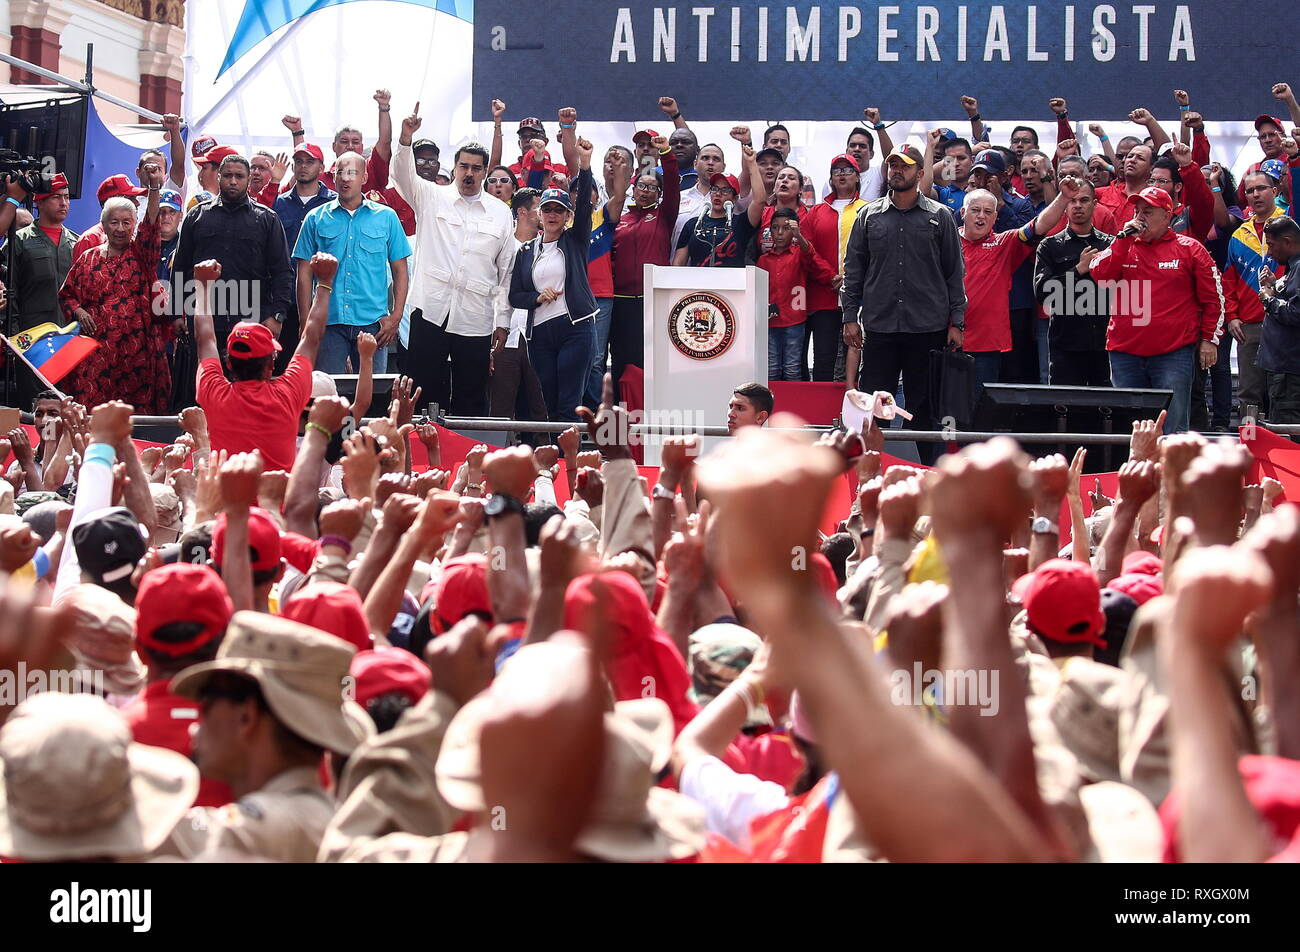 Caracas, Venezuela. 09th Mar, 2019. CARACAS, VENEZUELA - MARCH 10, 2019: Venezuela's President Nicolas Maduro and his wife Cilia Flores (C background) during a rally marking Anti-imperialism Day by the Miraflores Palace. Valery Sharifulin/TASS Credit: ITAR-TASS News Agency/Alamy Live News - Stock Image